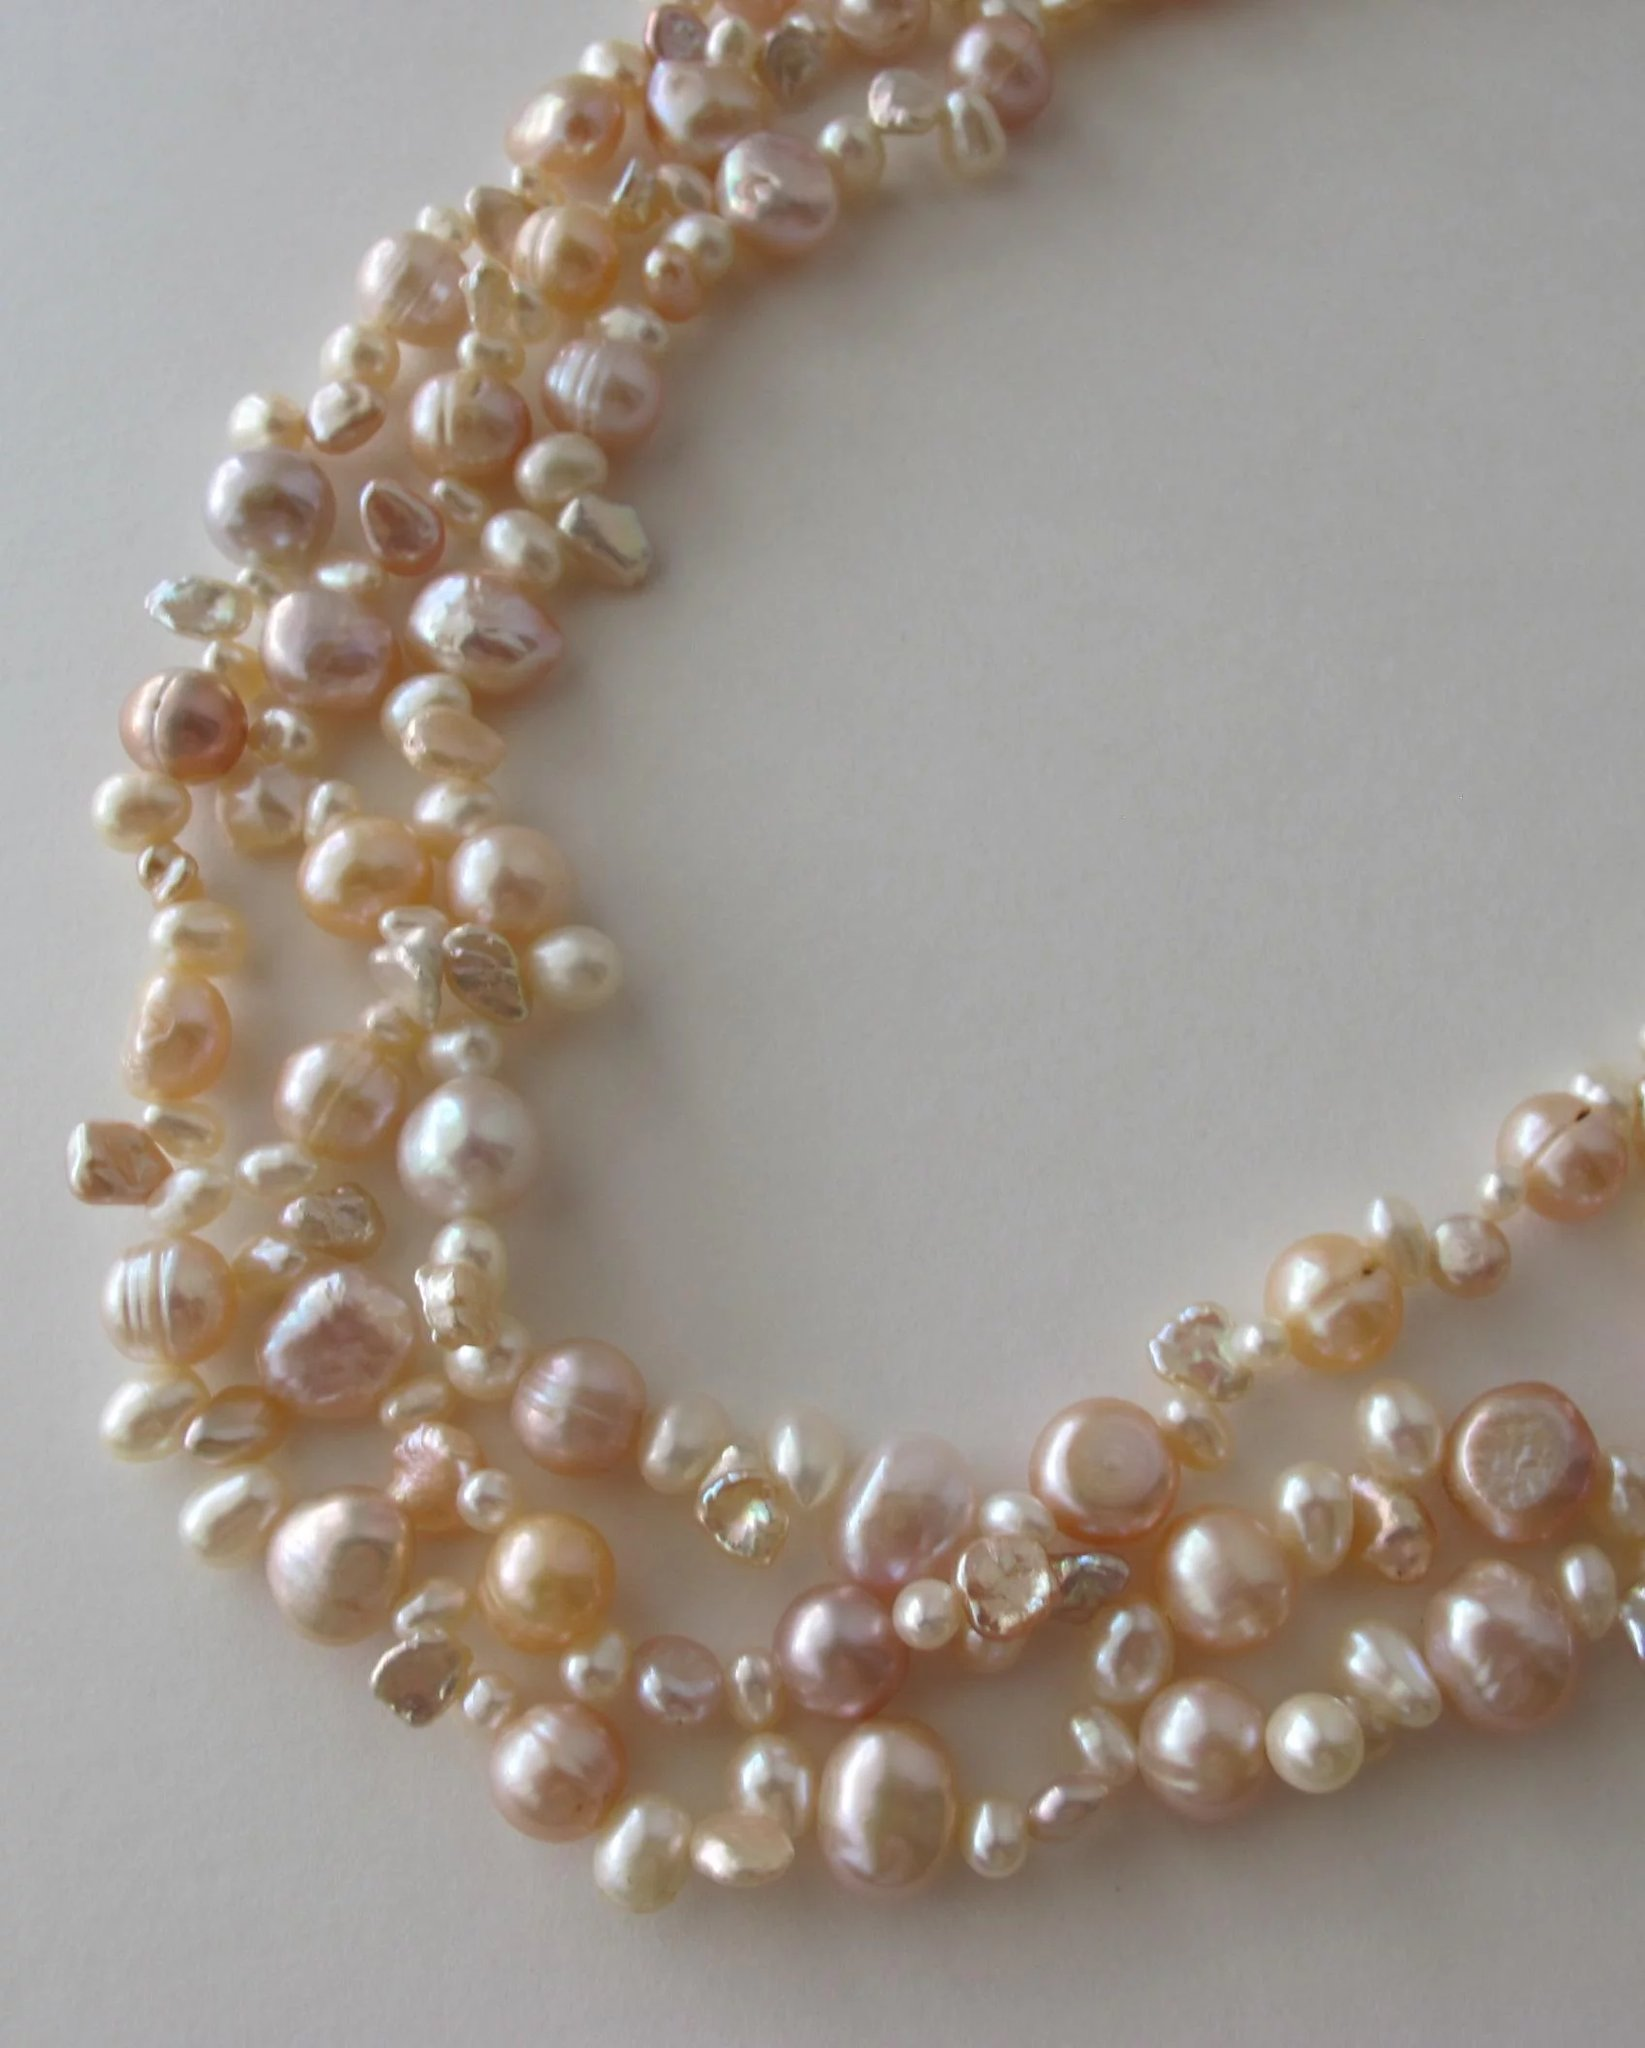 i display love inspect different pearls market jewelry observations pearl pastel colored in and you multi to ogles guangzhou allow strands cases the